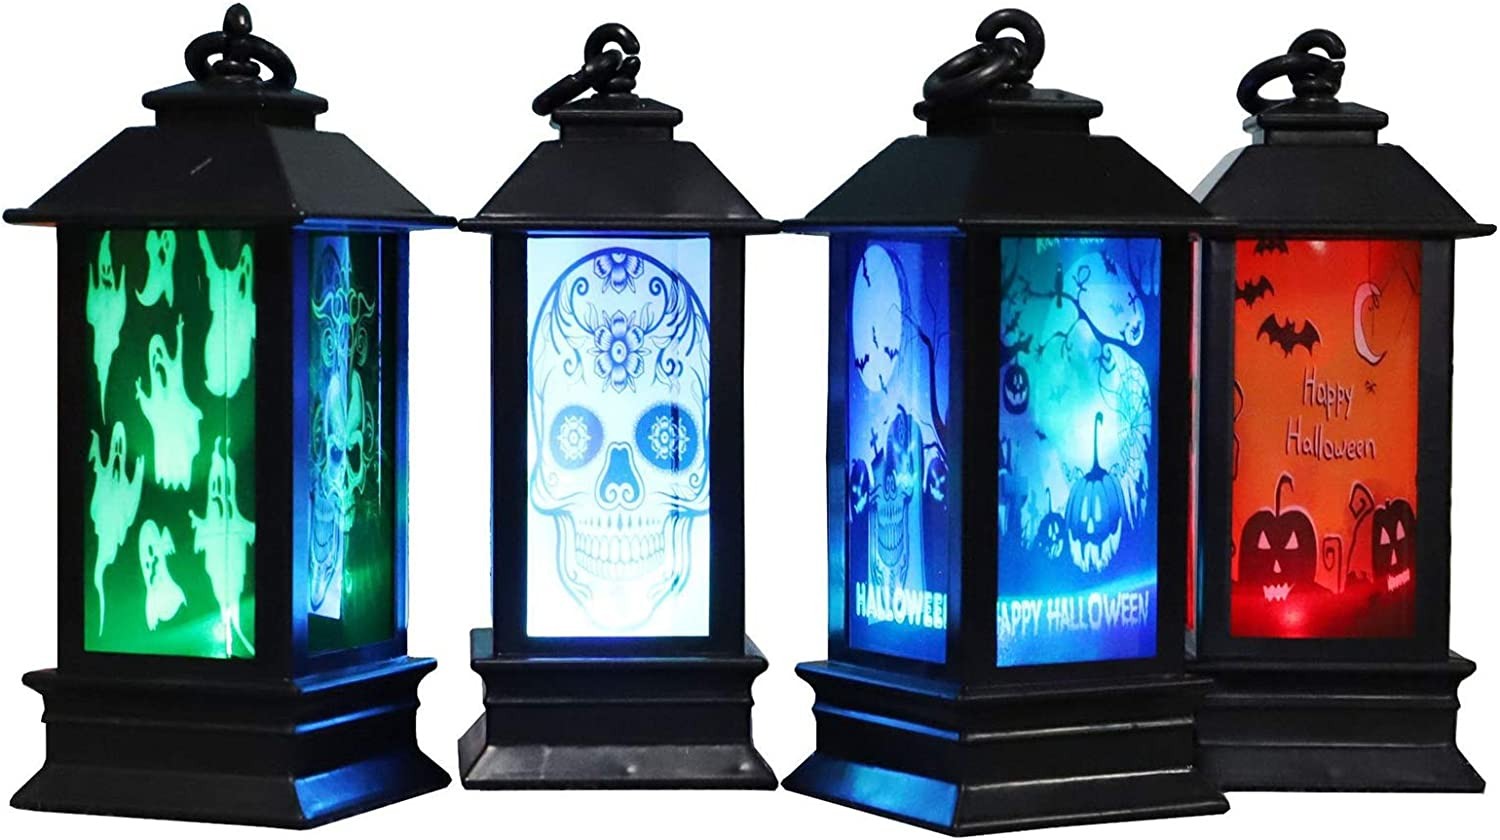 Mini Black Candle Lanterns,Vintage Style Decorative Hanging Small Lantern with Flickering LED for Halloween,Christmas,Wedding,Table Centerpiece, Accent Piece and Party Favor (Black, 4 Pieces)